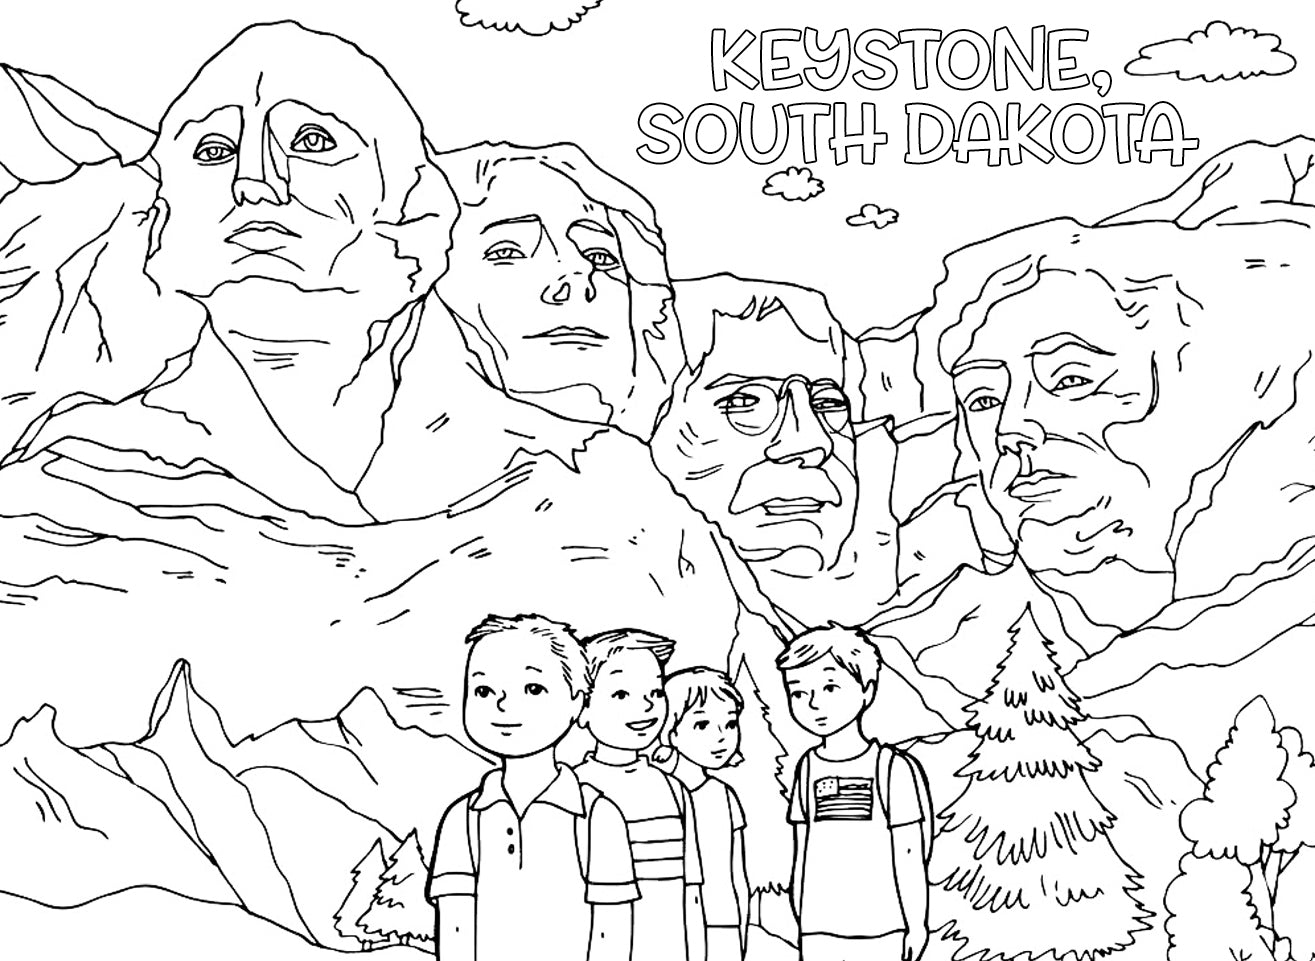 Mount Rushmore Coloring Page For Kidscoloring Pages Kids Printable Free